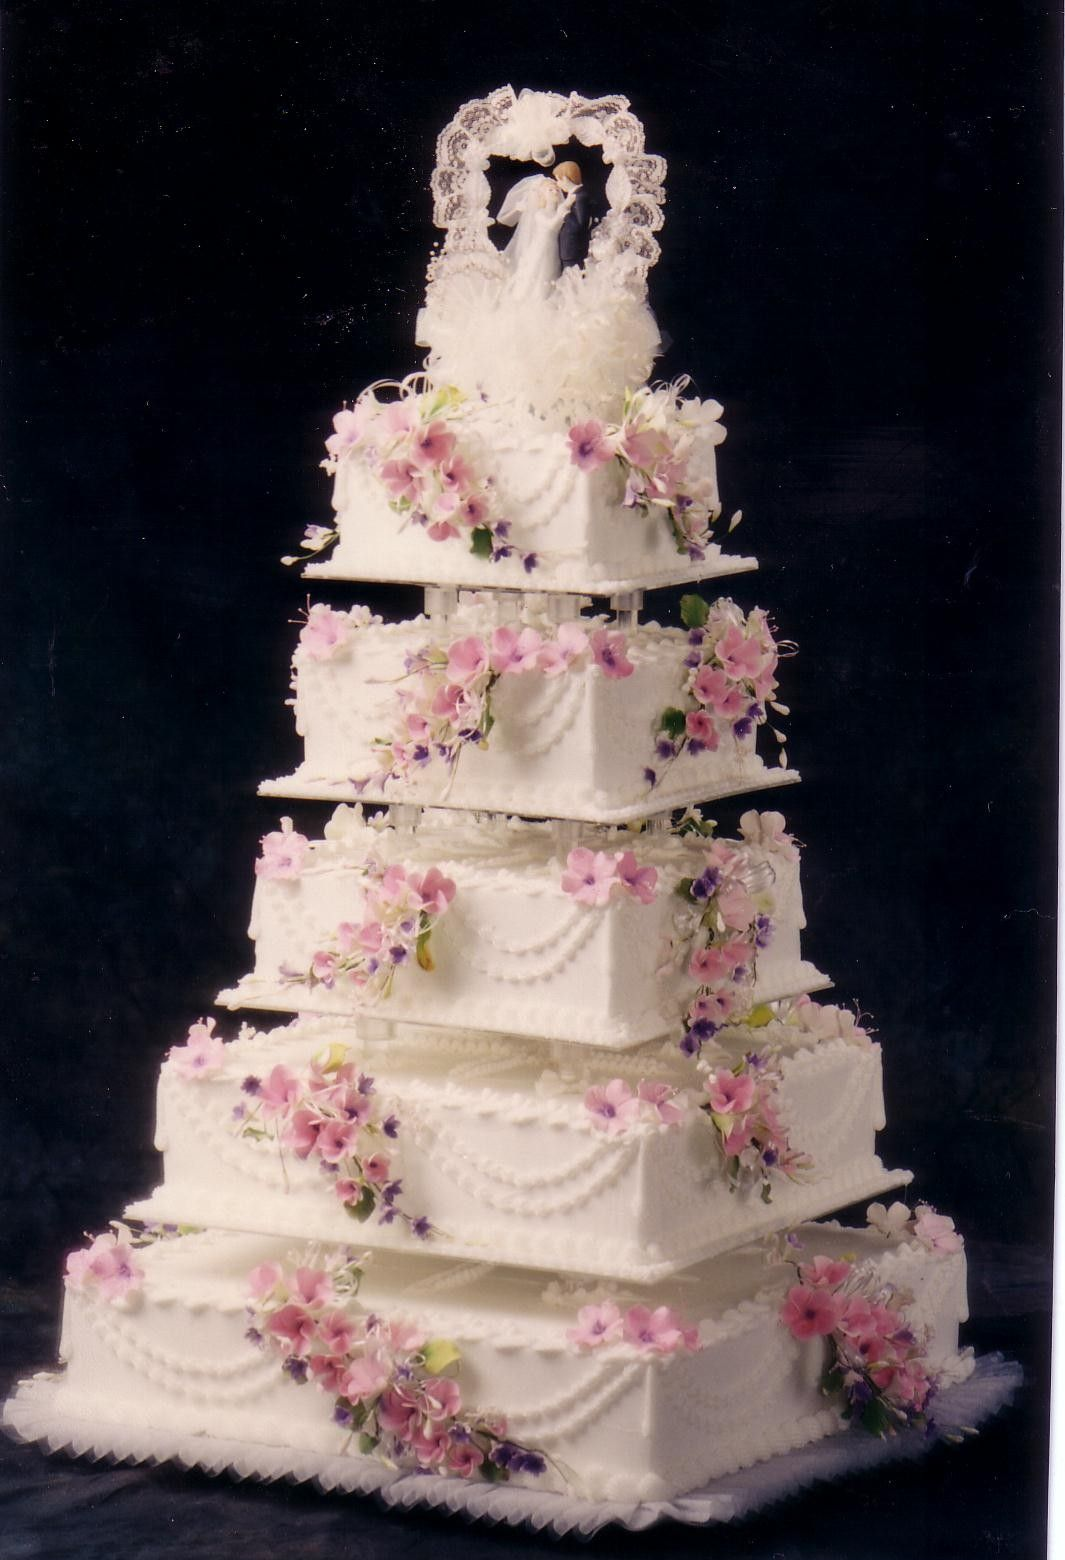 Tiered Wedding Cakes With Fountains Tier White Square Wedding Cake